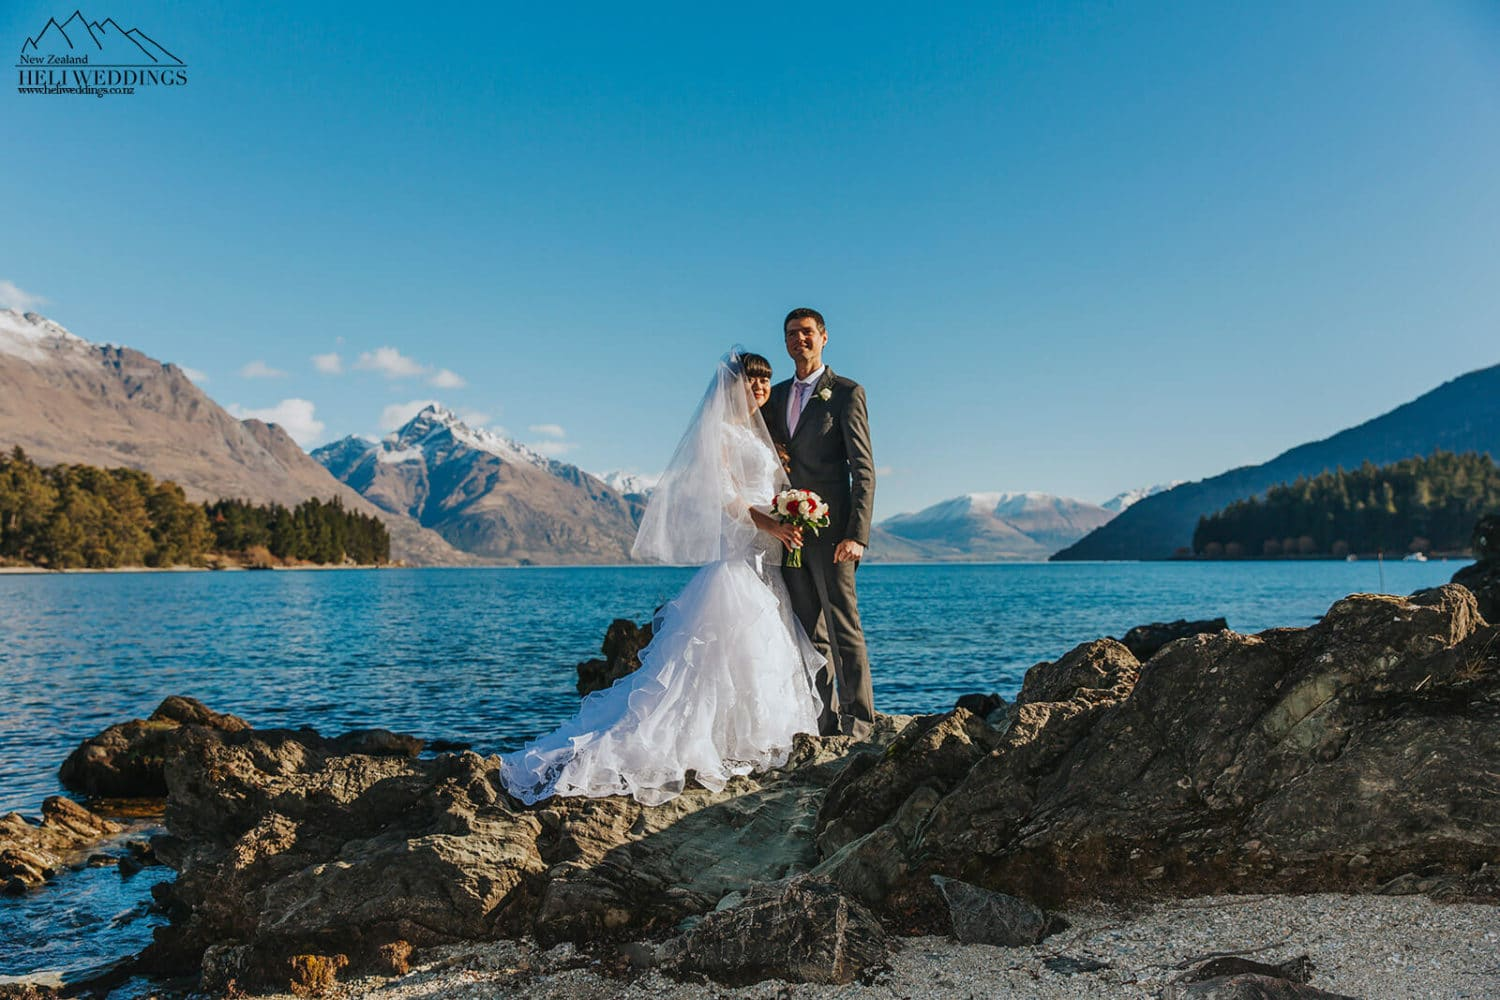 Wedding photography by the lake in Queenstown